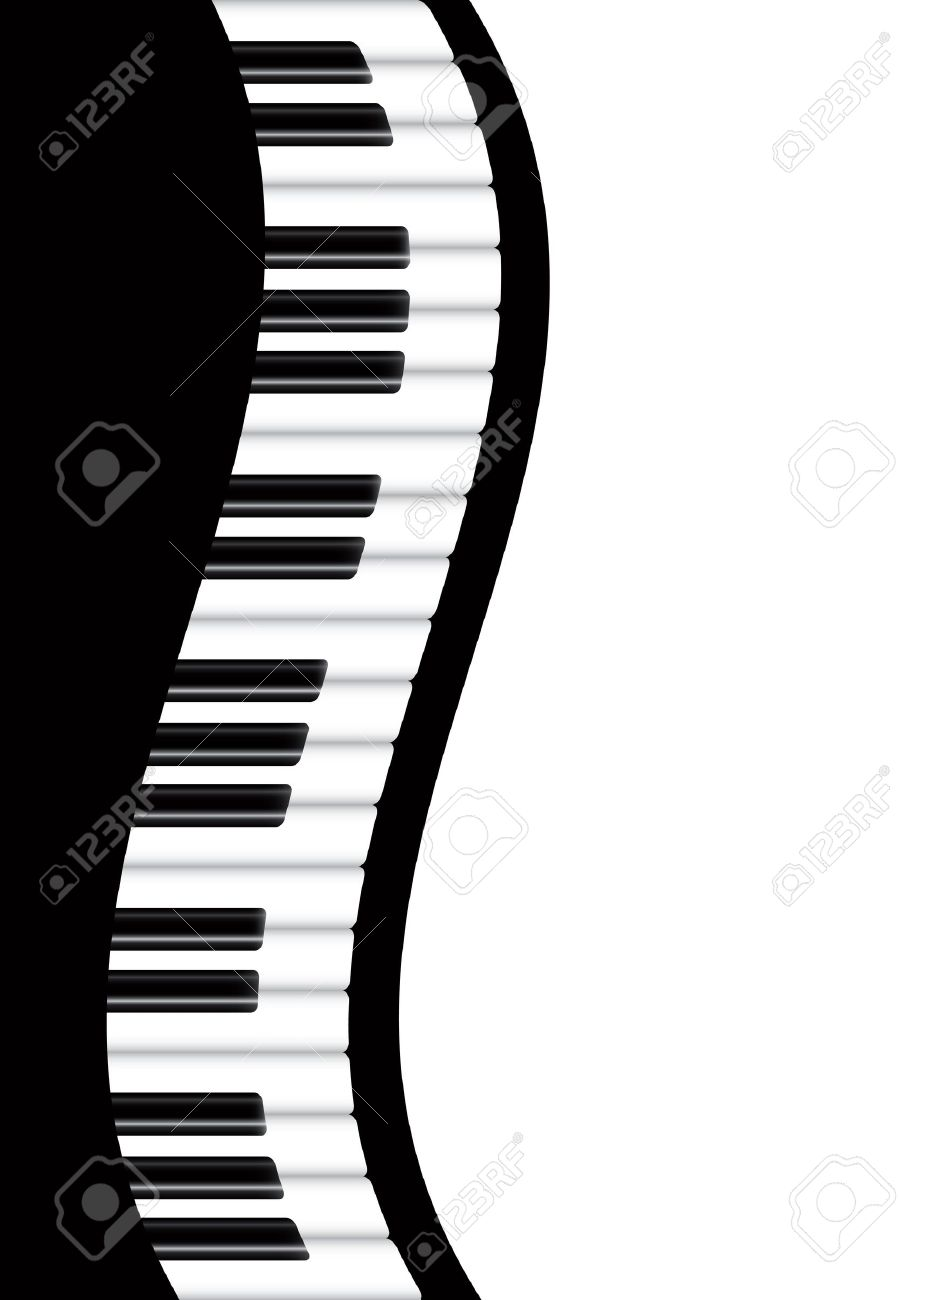 Piano Clipart Free Download | Free download best Piano Clipart Free